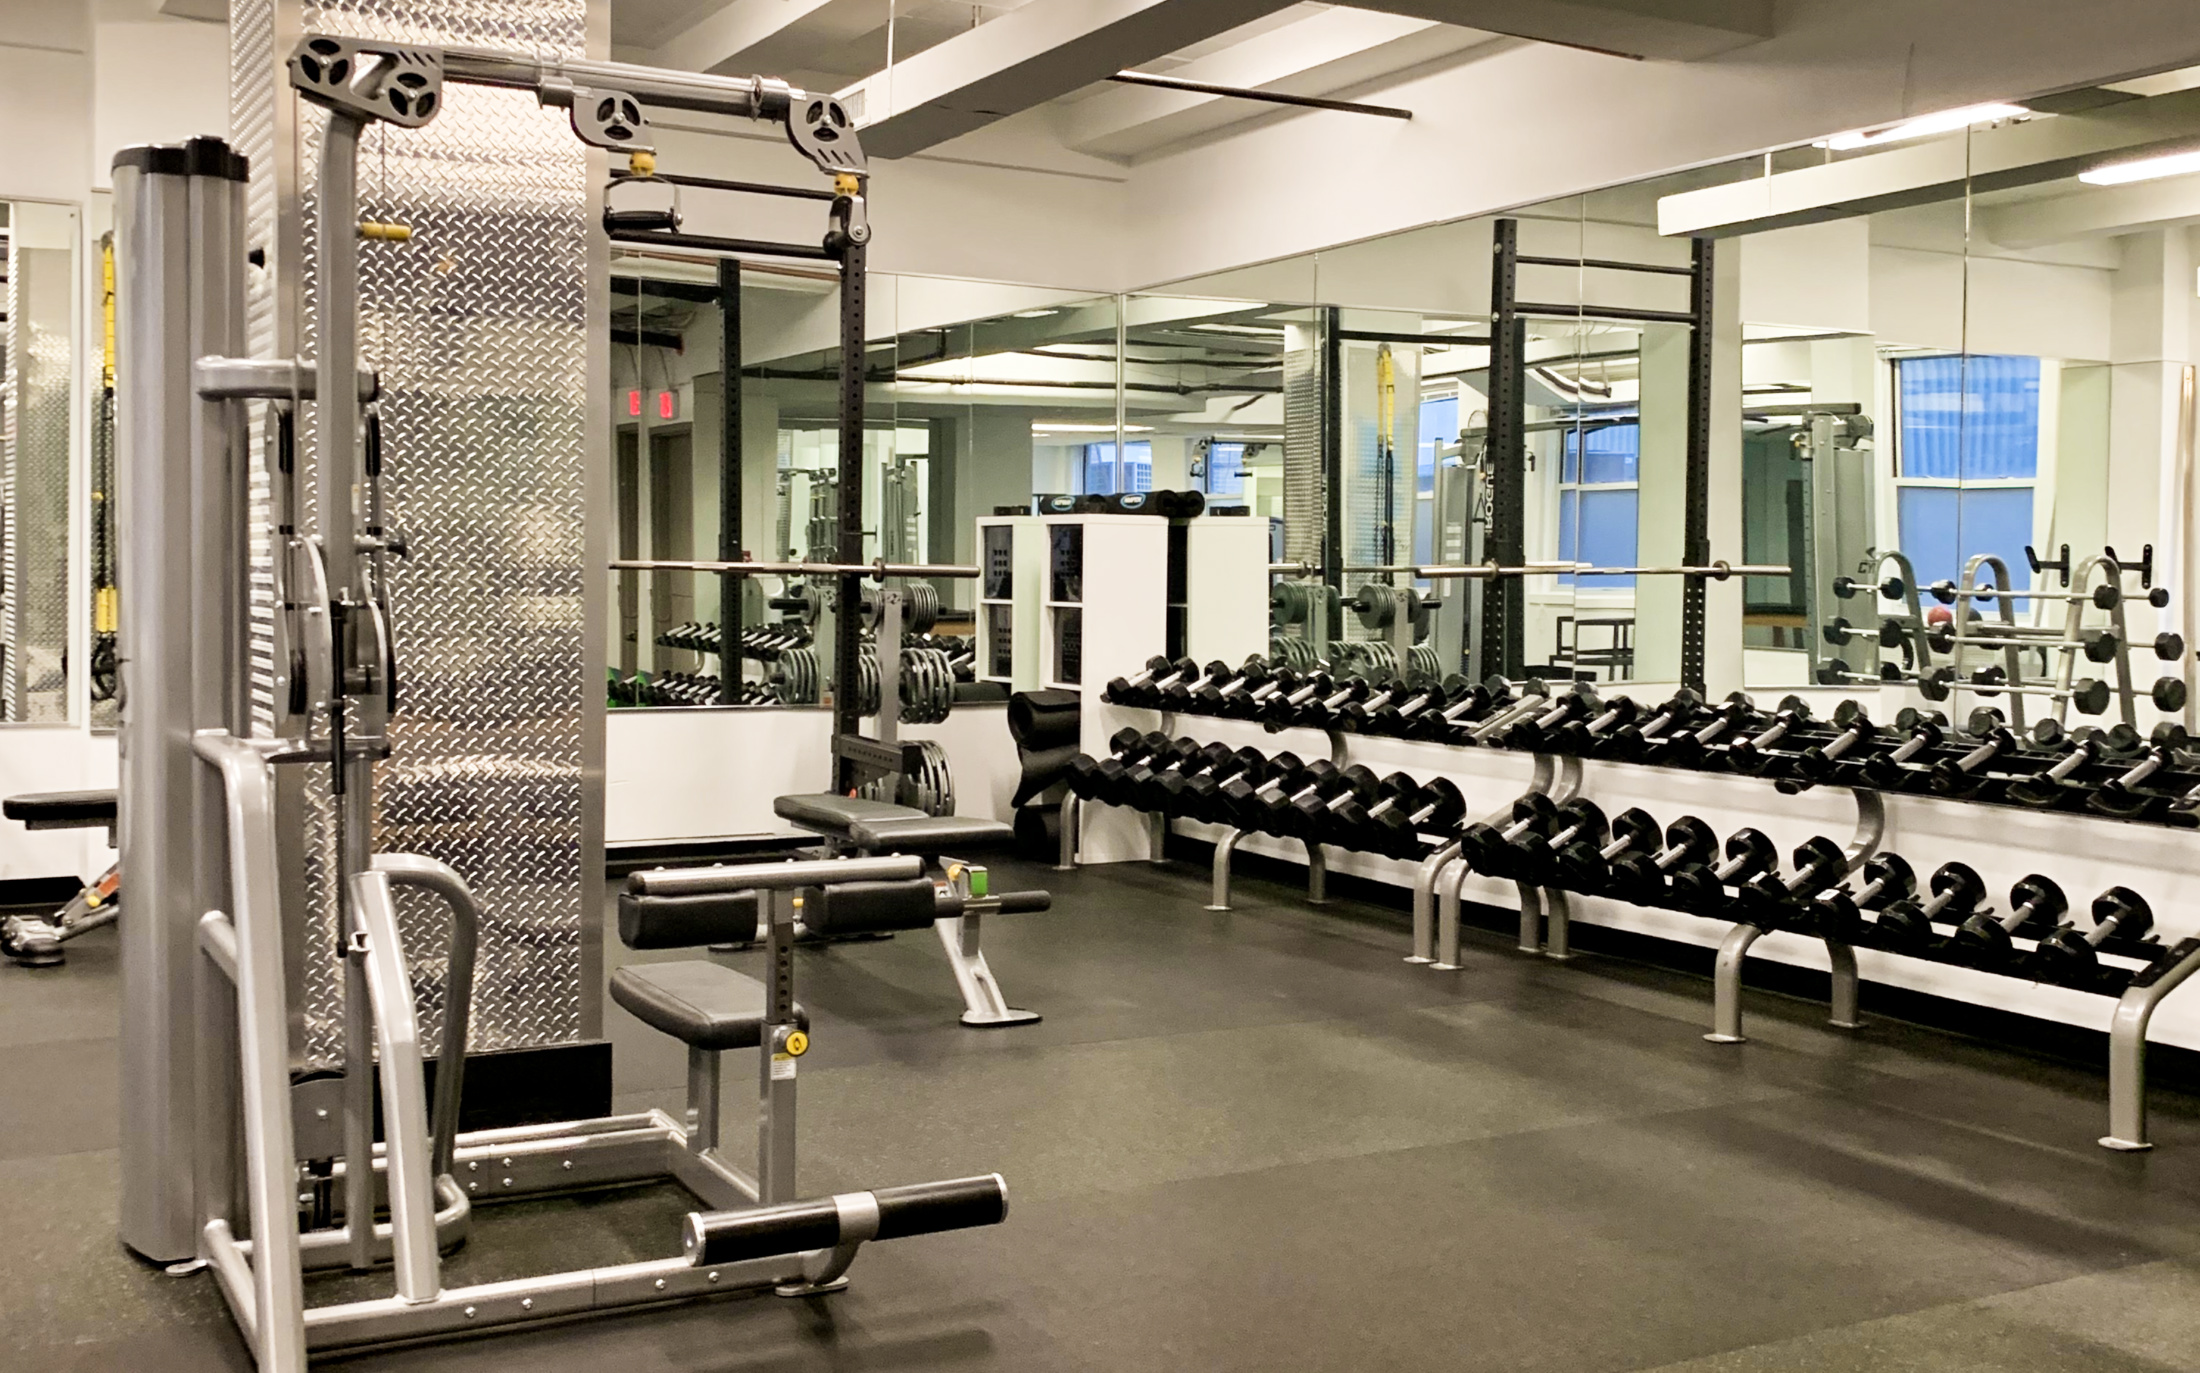 elevate Health & Fitness equipment